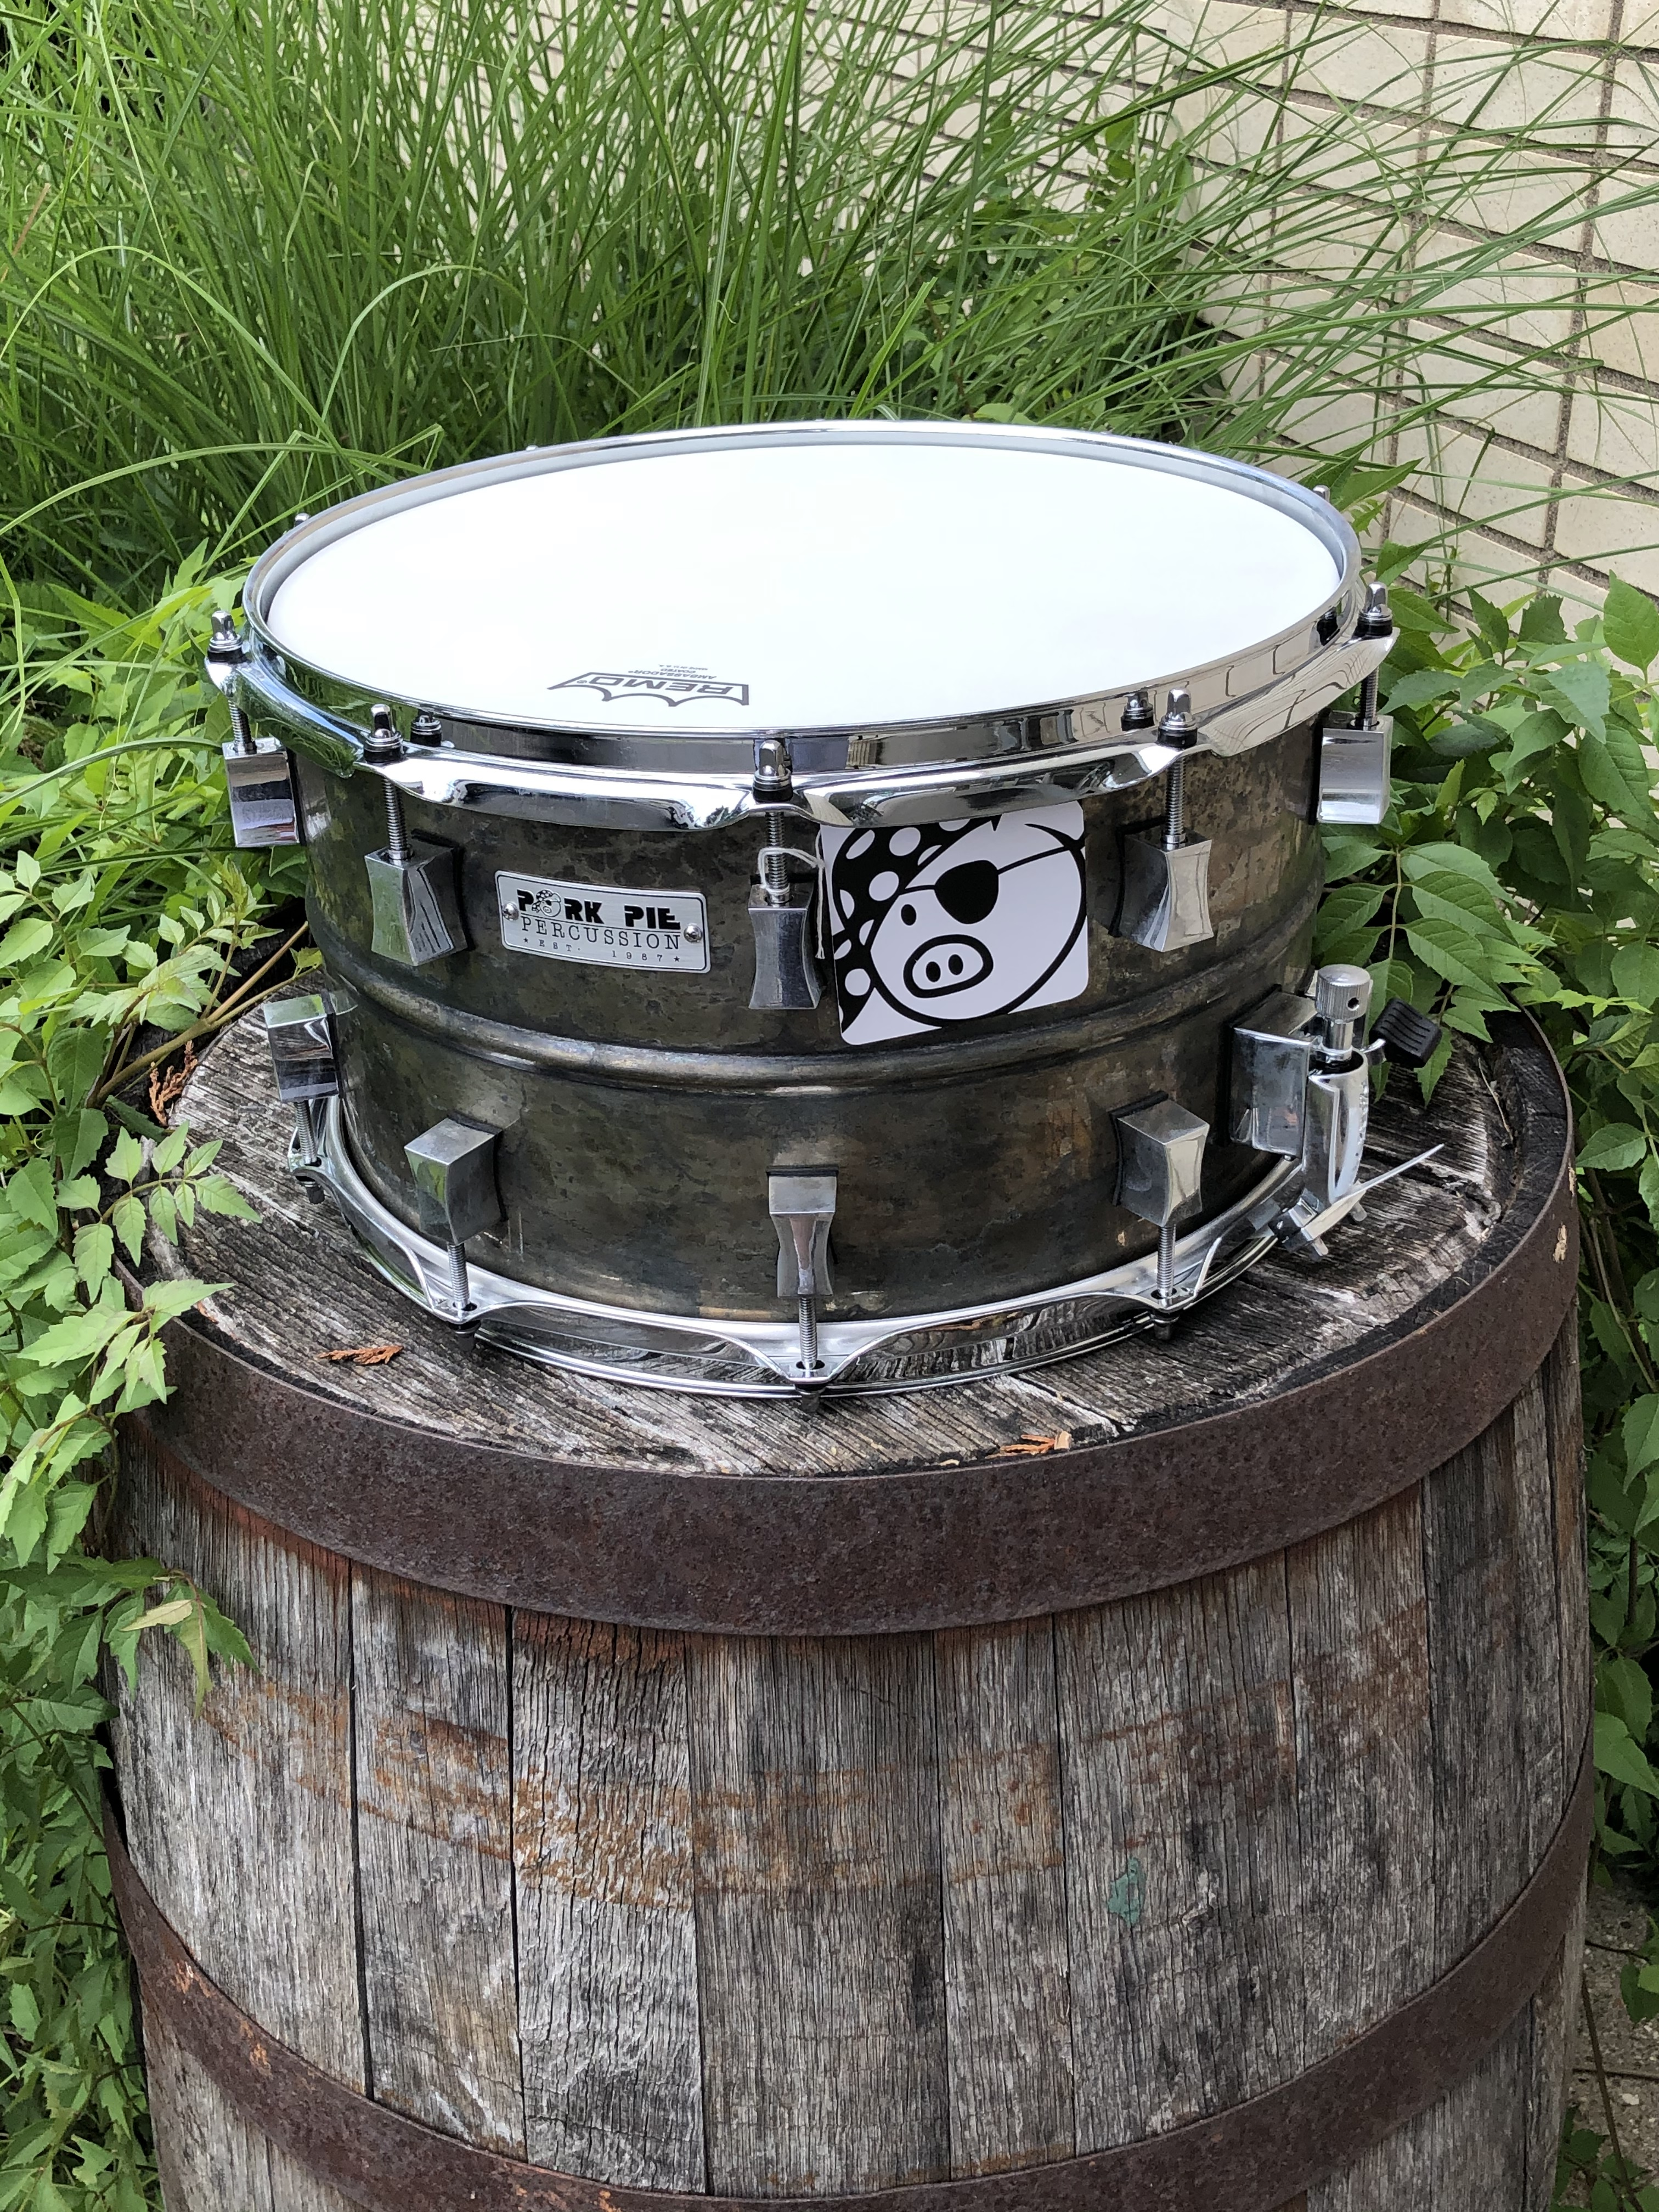 Pork Pie Usa Aged Patina Brass Snare Drum With Chrome Hardware 1 Of 1 Exclusive